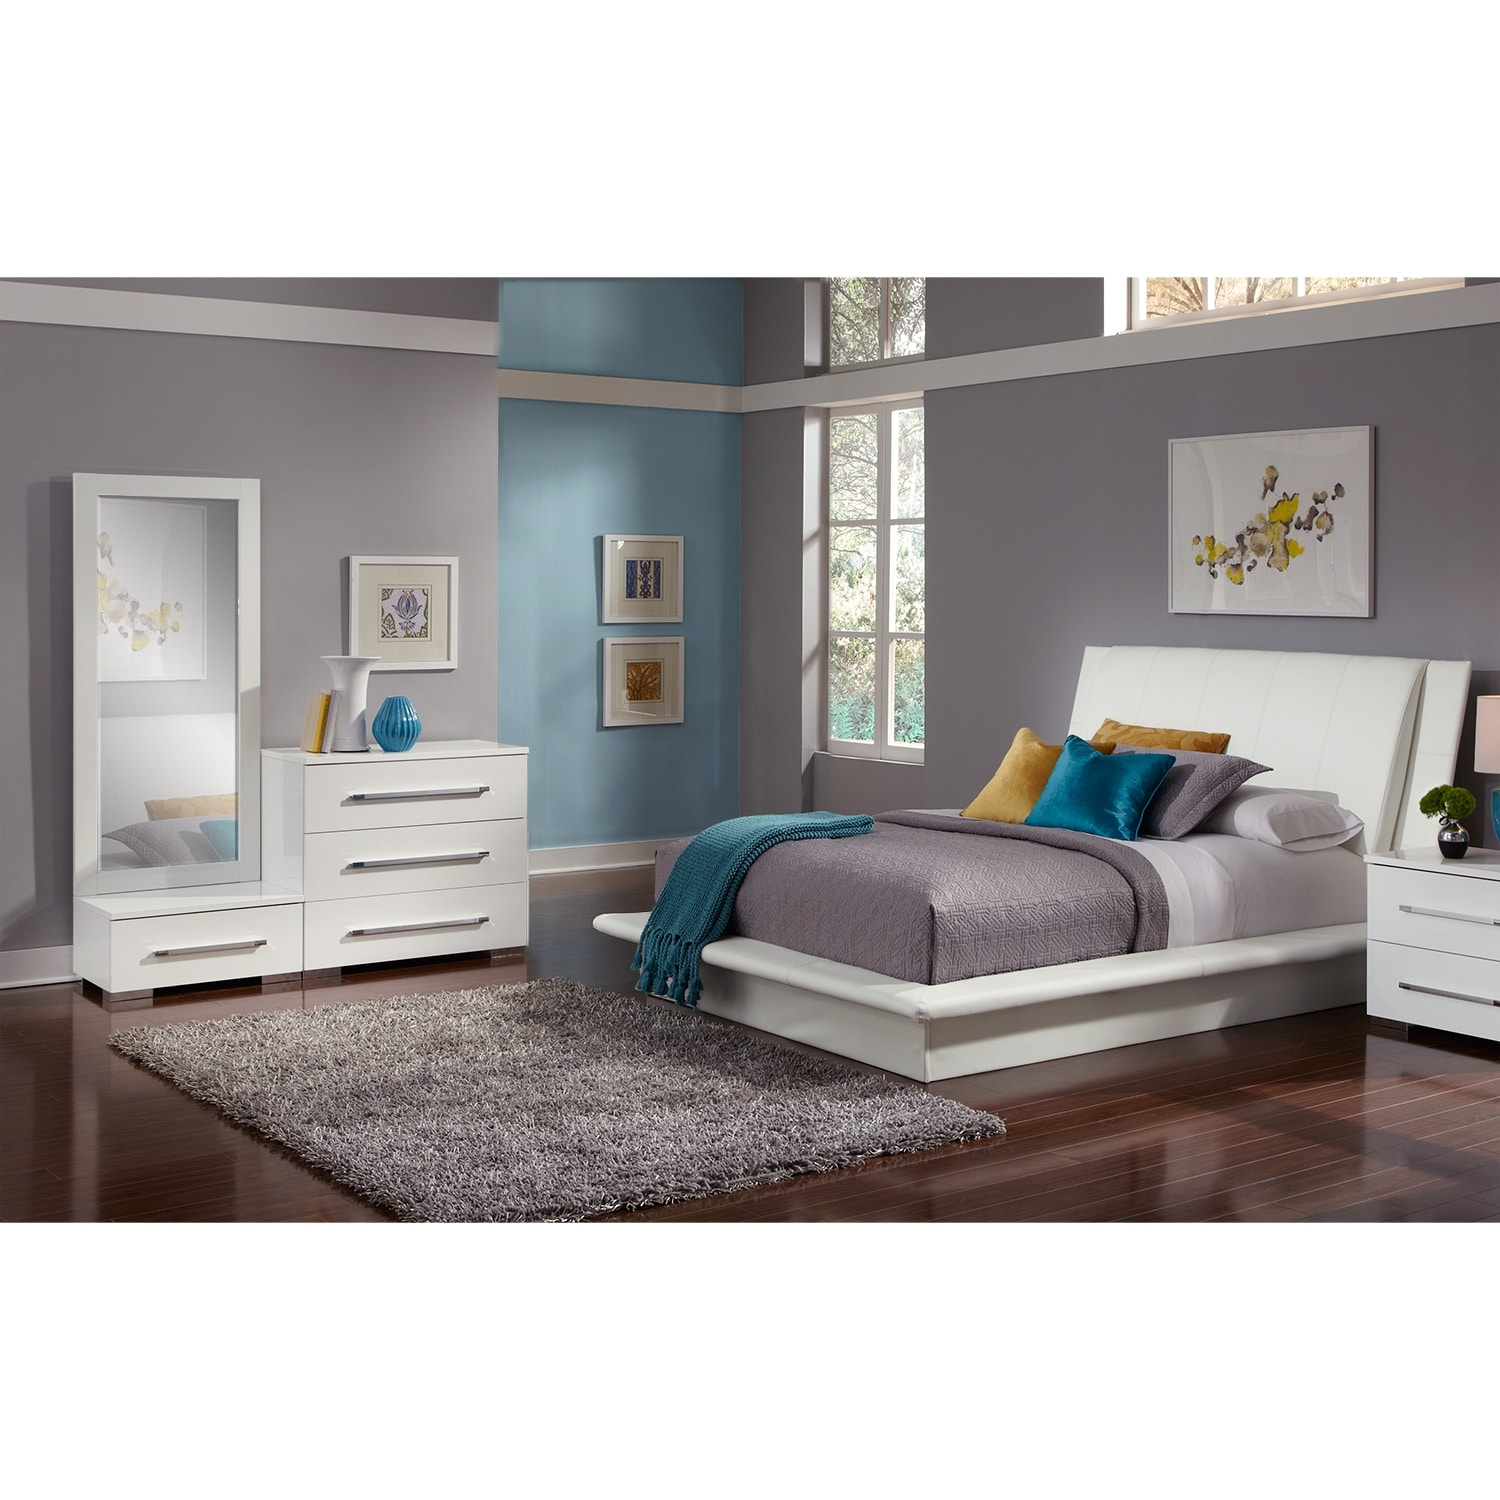 Dimora 5 Piece Queen Upholstered Bedroom Set White American Signature Fur